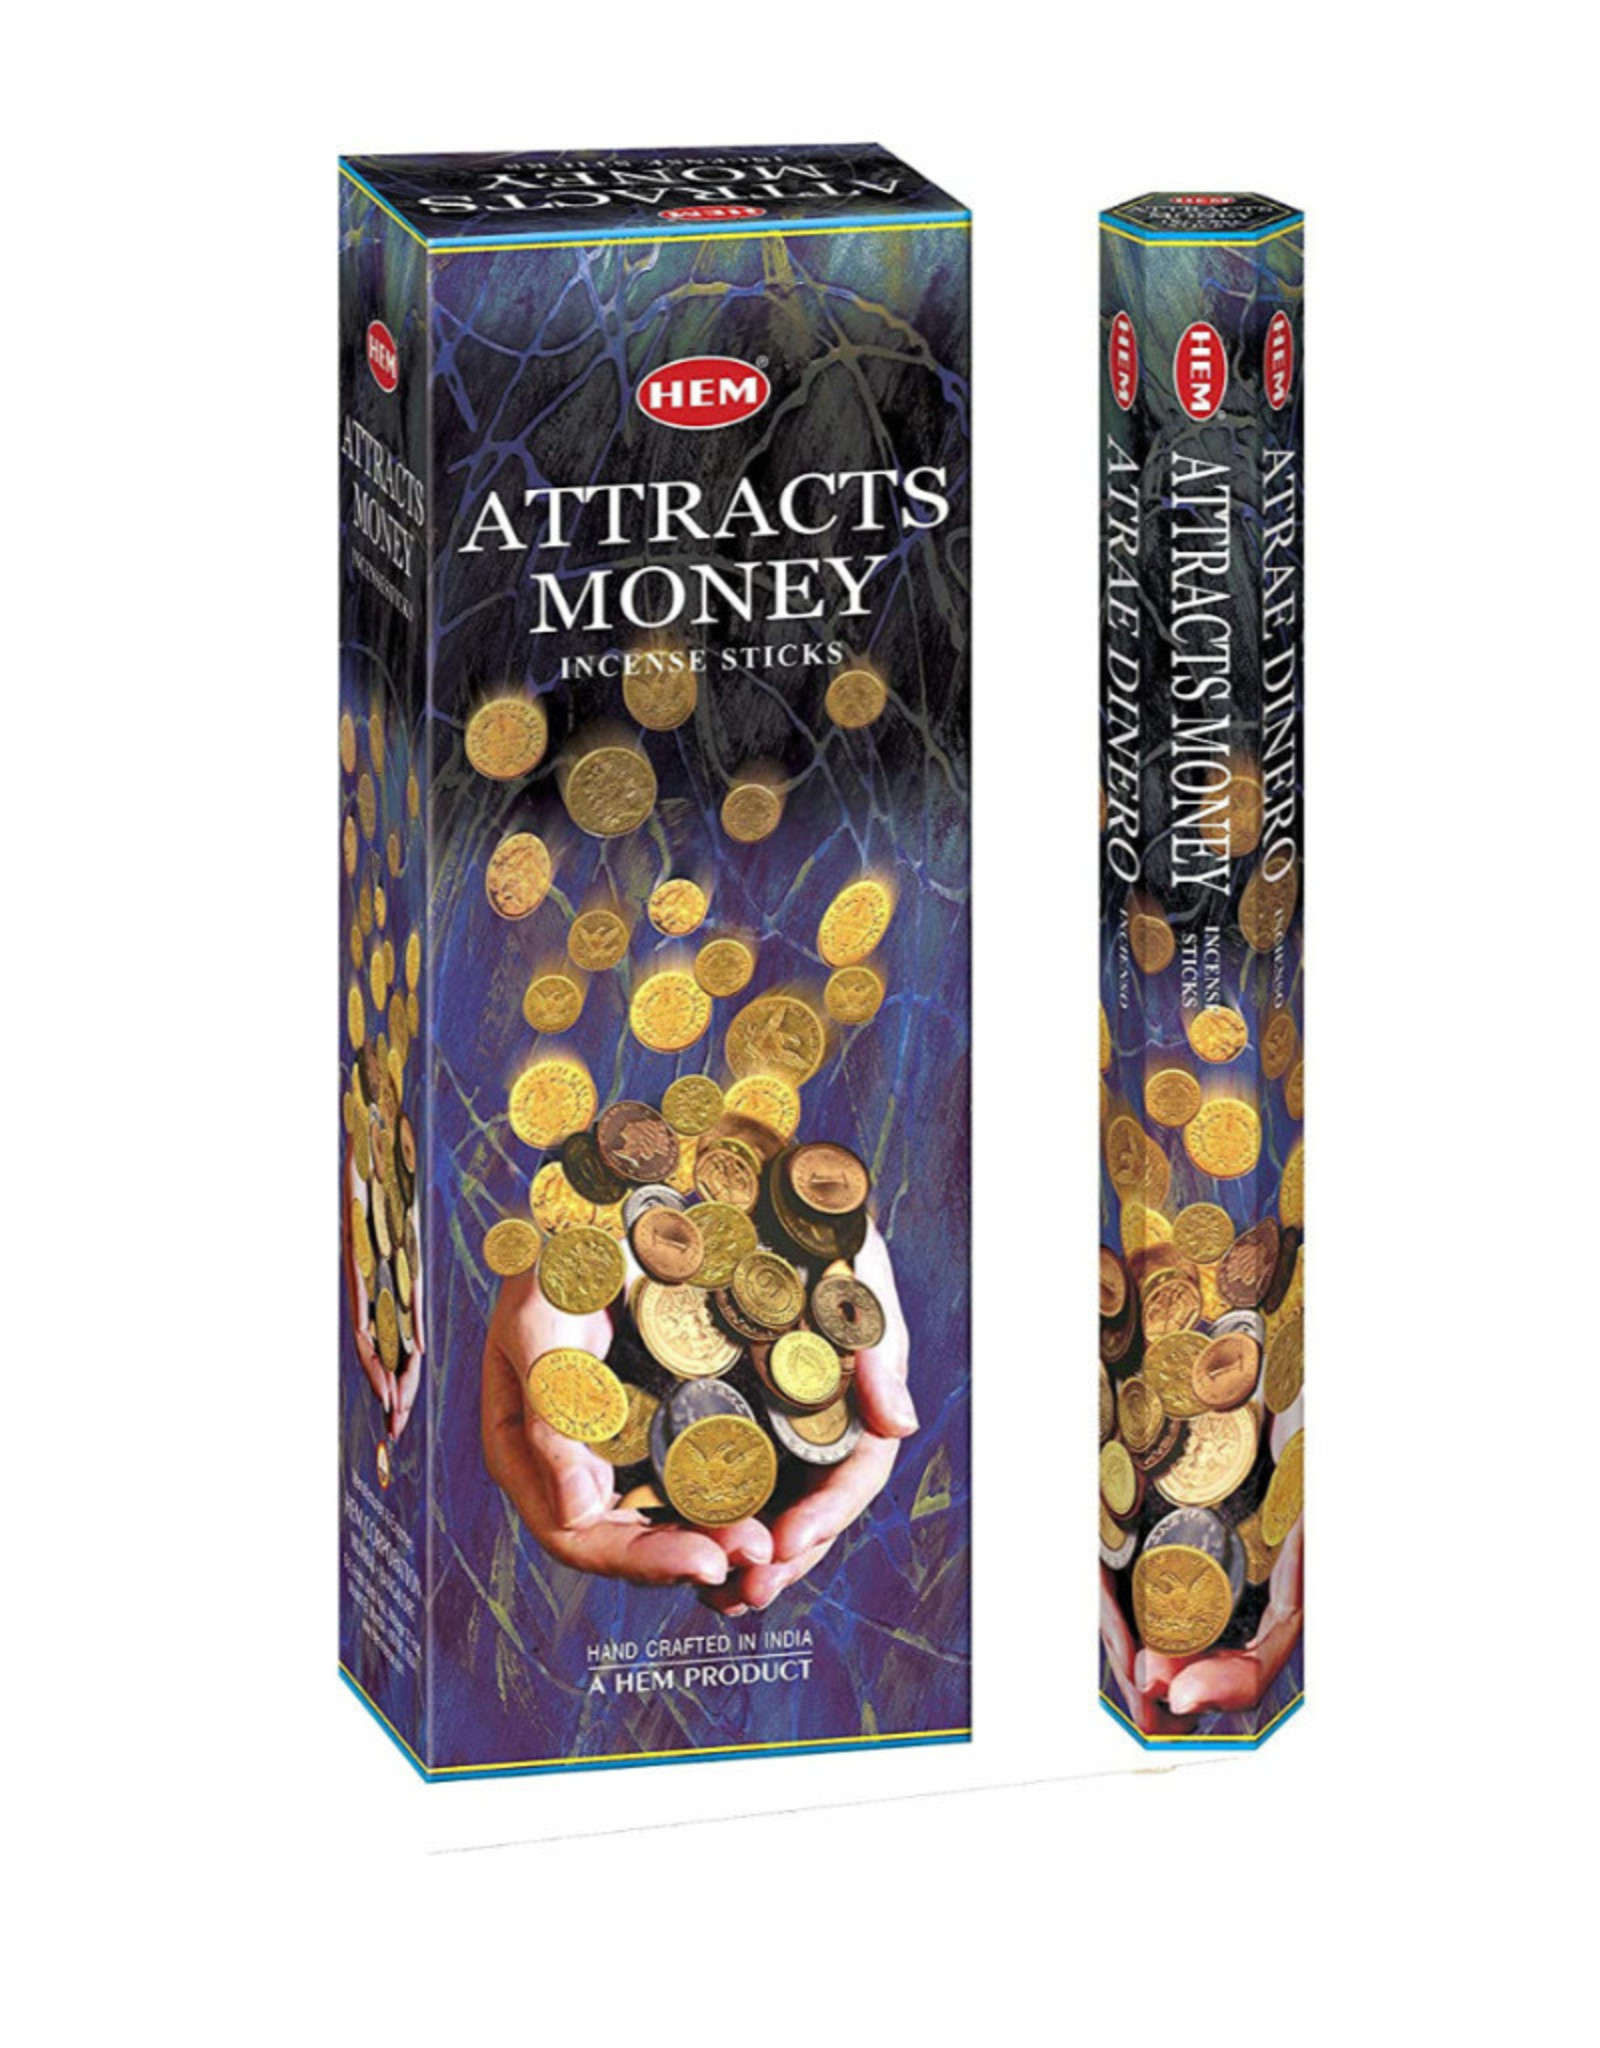 HEM Attracts Money Incense Sticks